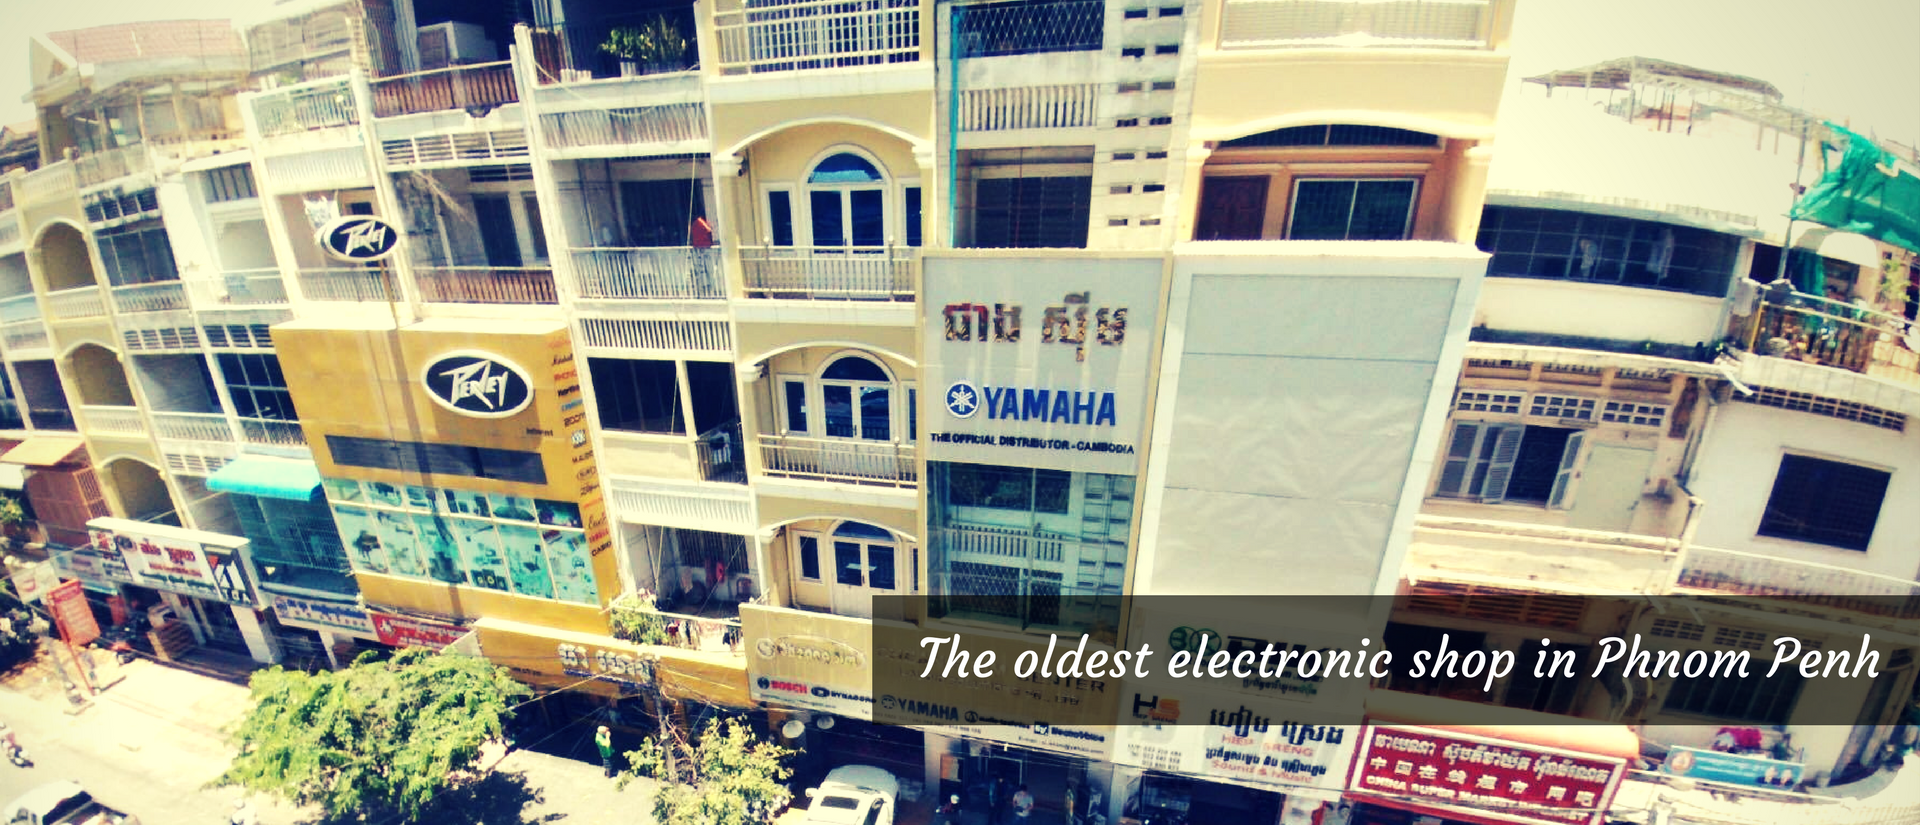 Cheang Sim Center - The Oldest Electronic Shop in Phnom Penh